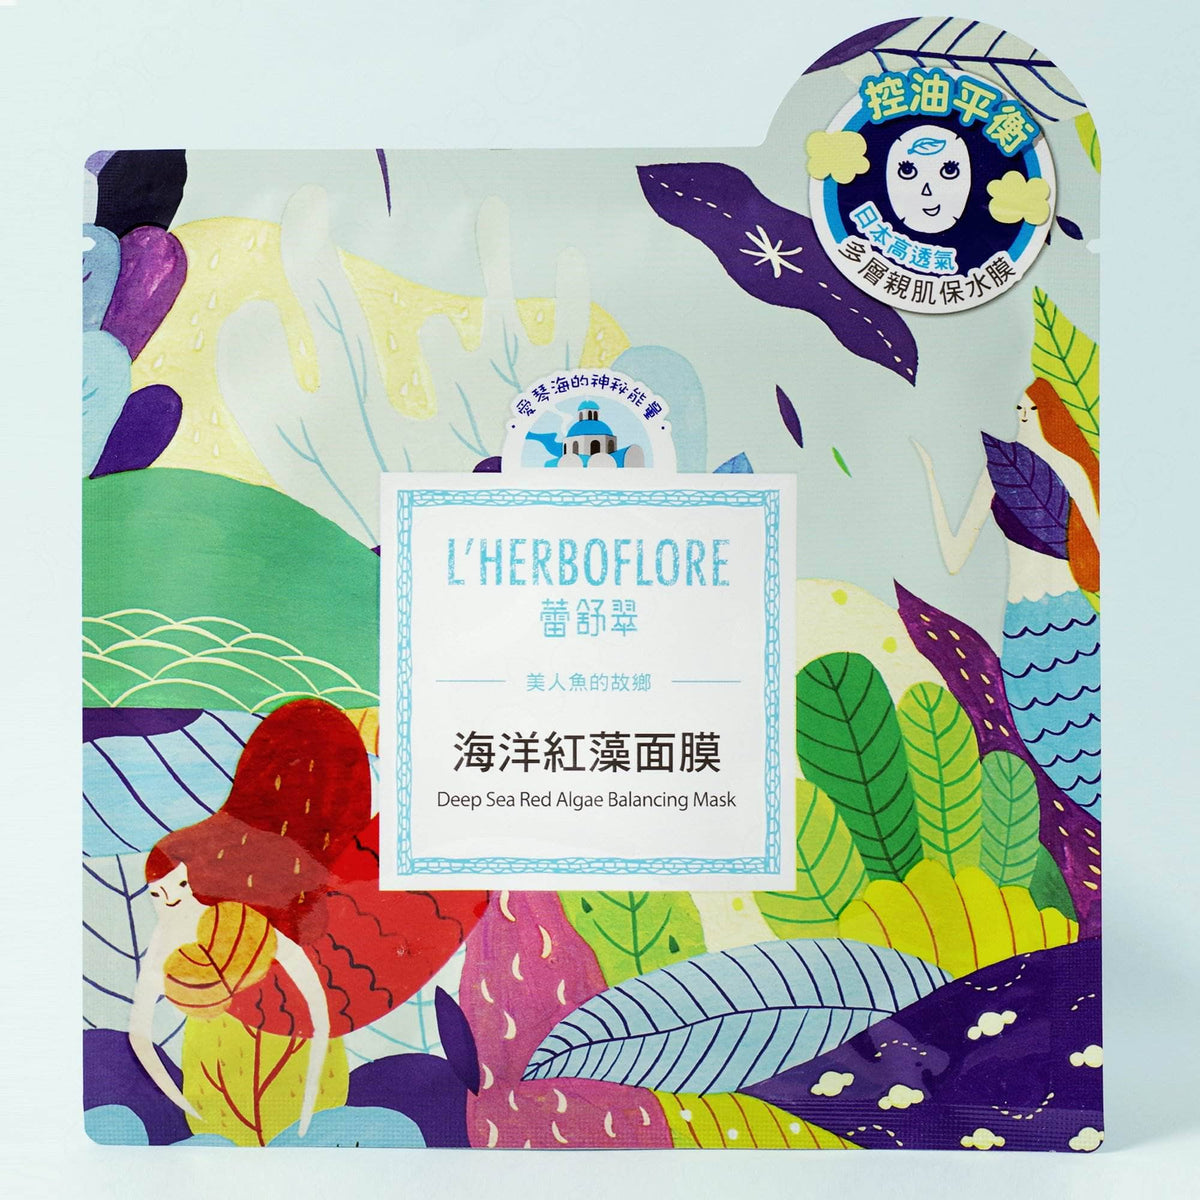 L'Herboflore Deep Sea Red Algae Balancing Mask